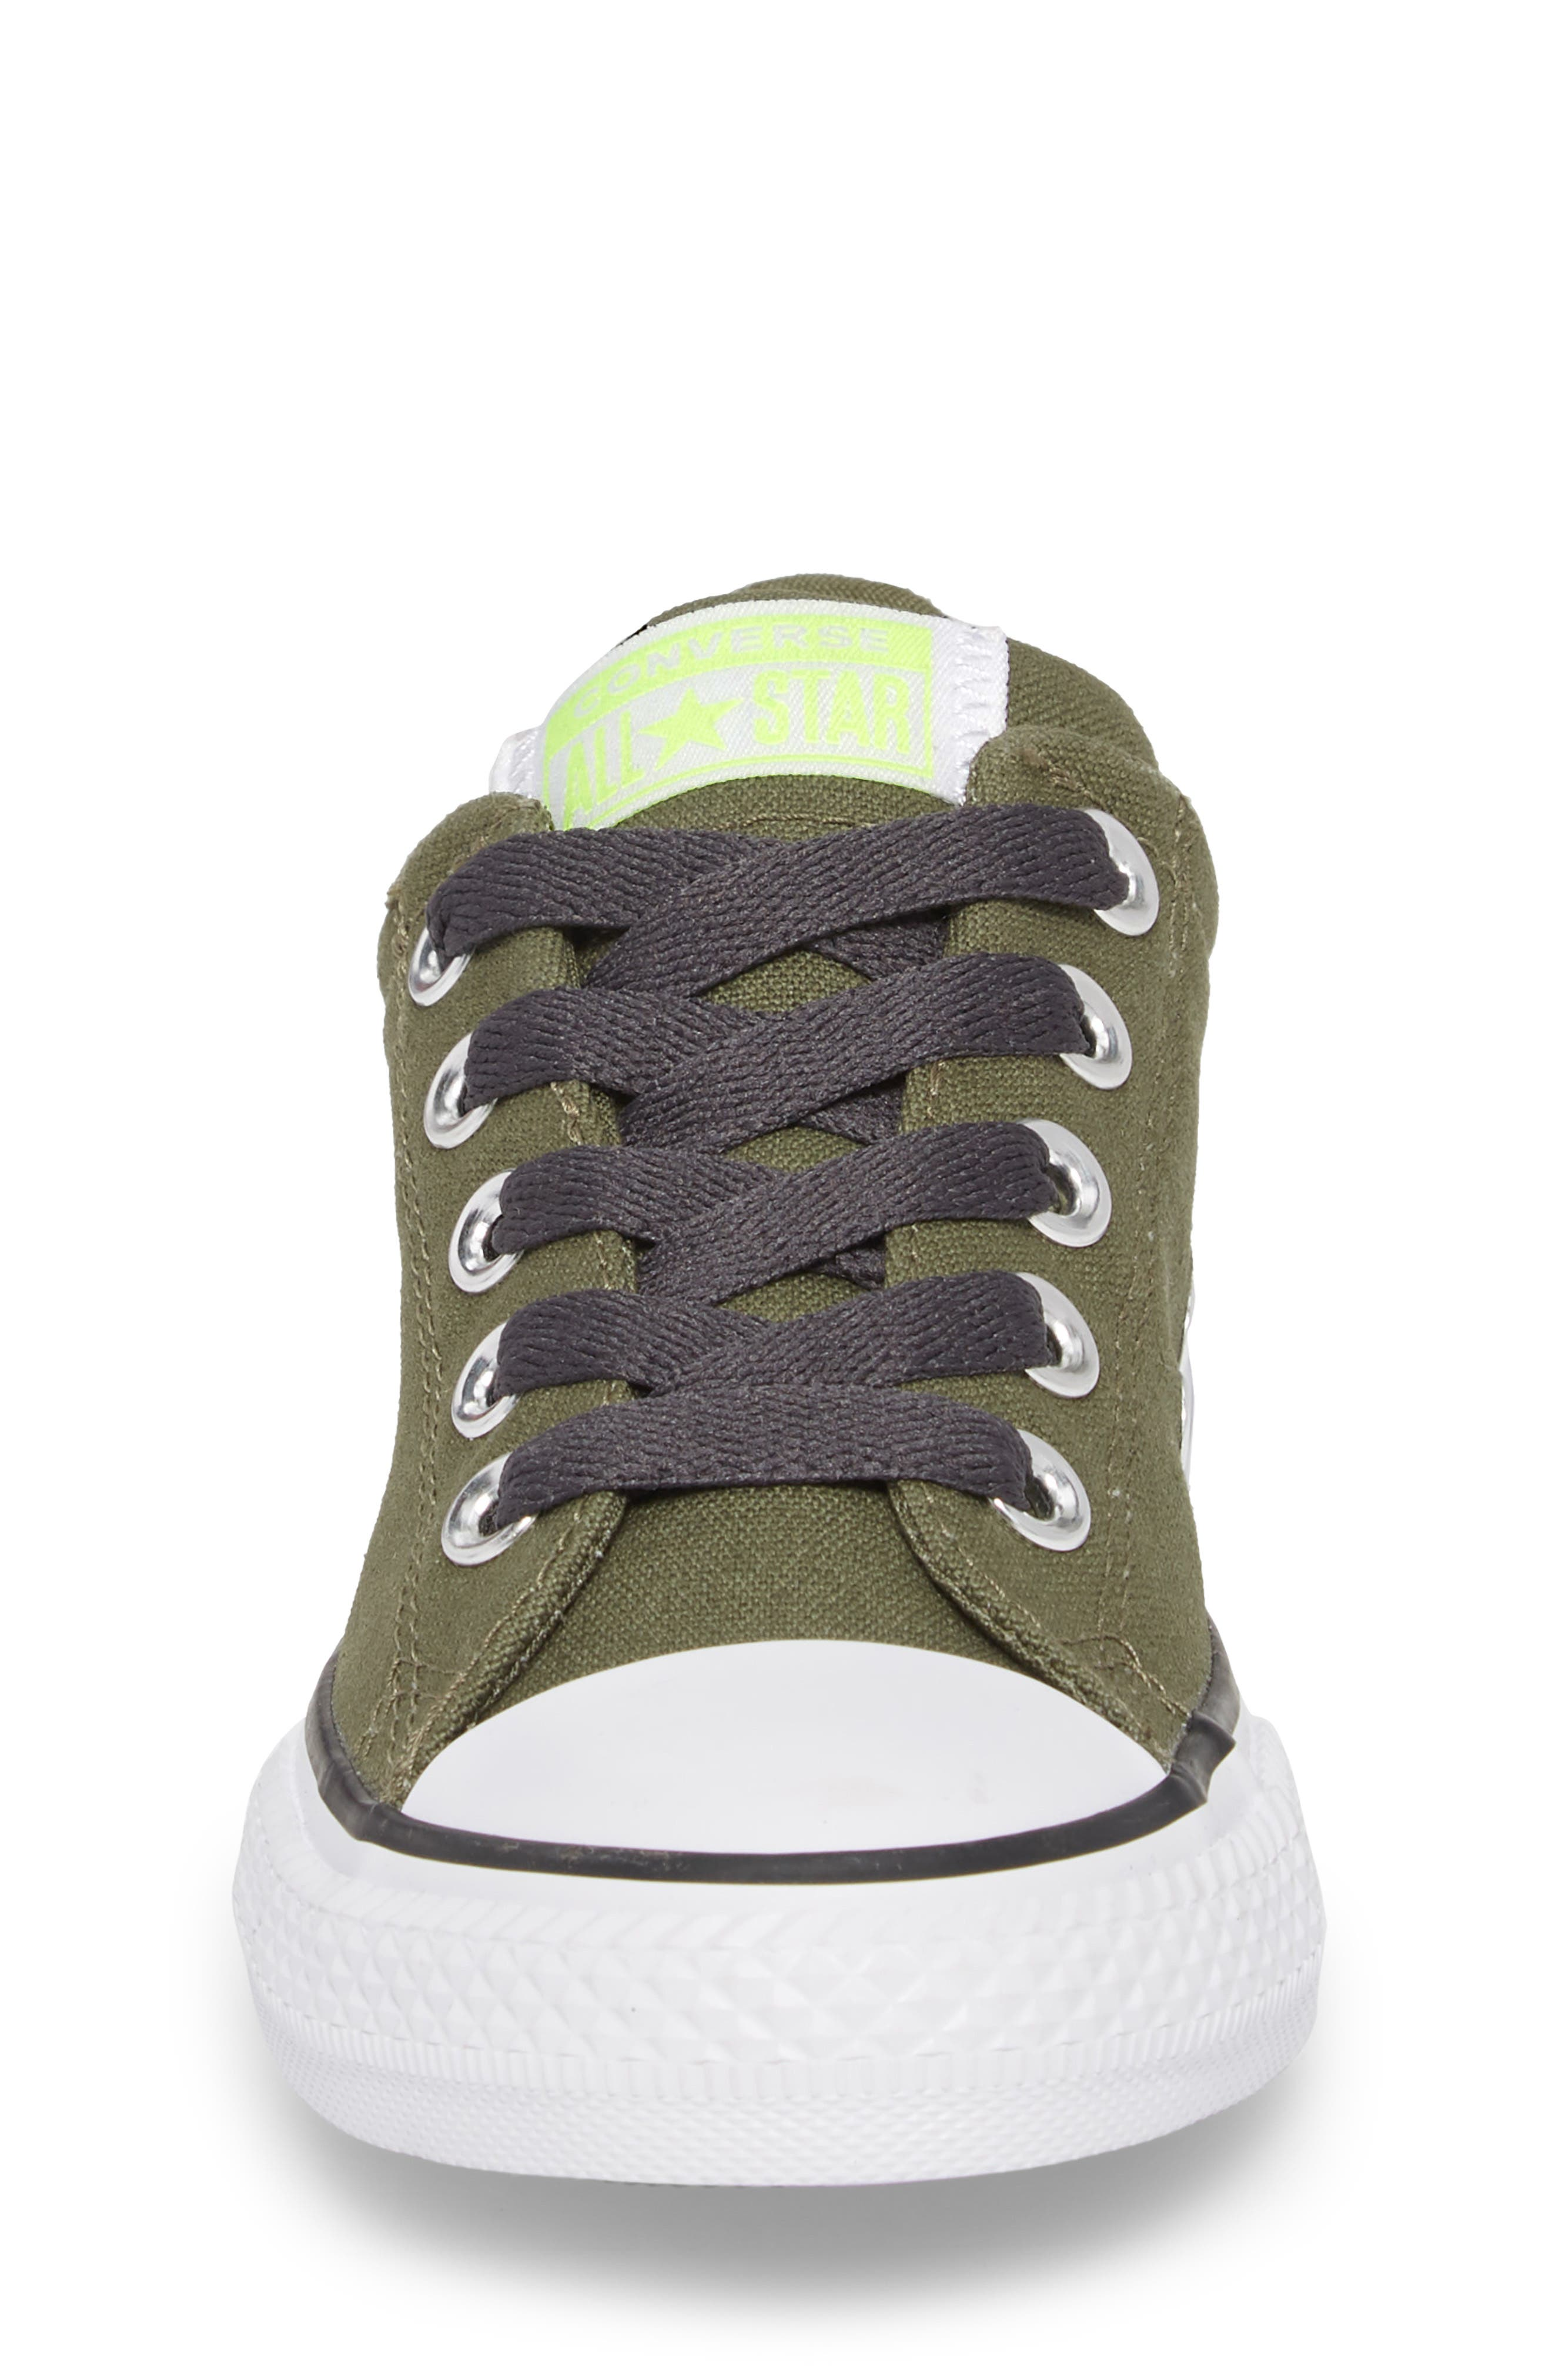 Chuck Taylor<sup>®</sup> All Star<sup>®</sup> Street Slip Low Top Sneaker,                             Alternate thumbnail 4, color,                             322